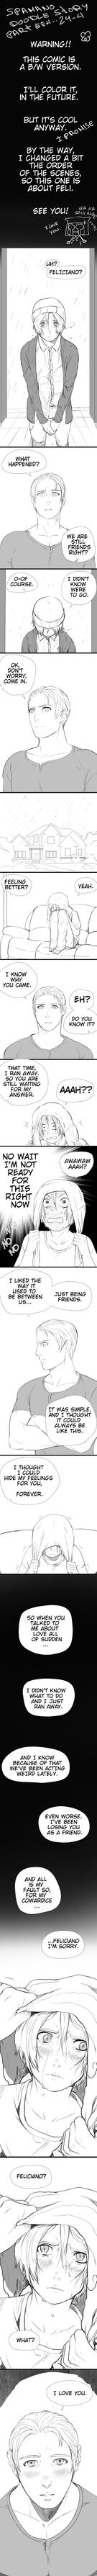 Spamano doodle-story 25 part4 (B/W) by mitssuki